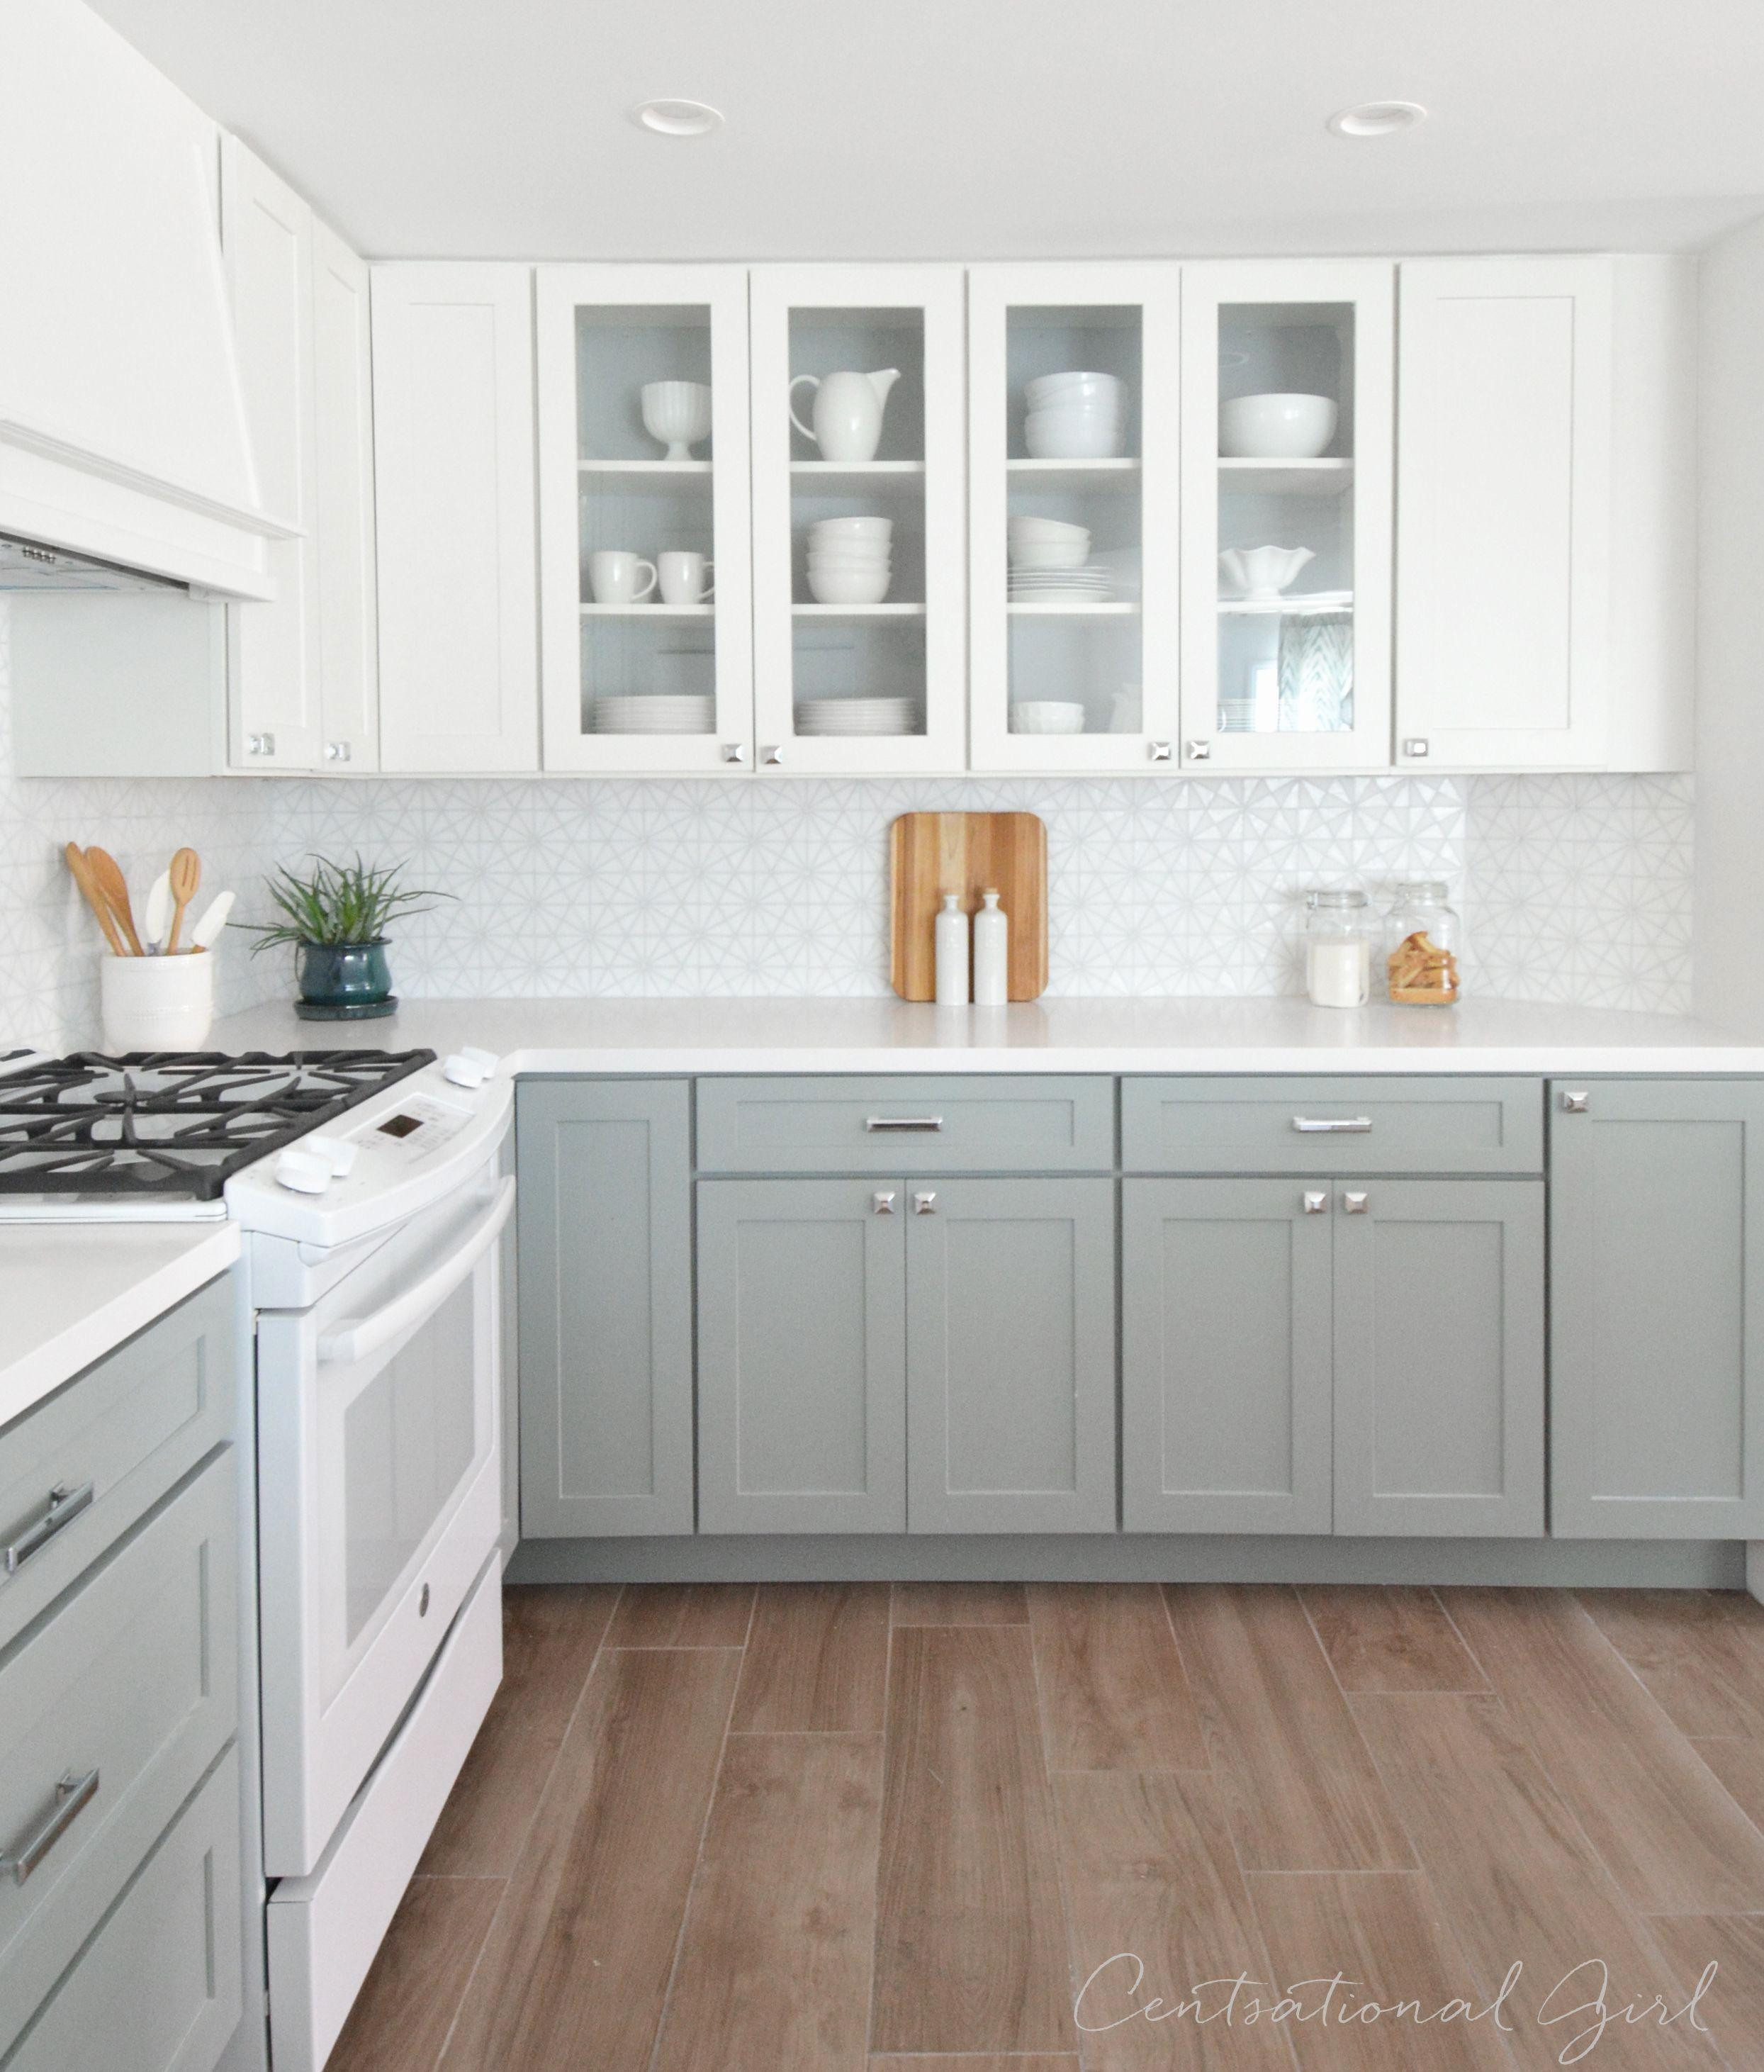 grey hardwood floors kitchen of inspirational white kitchen cabinets with grey island blogbeat net for white kitchen cabinets with grey island luxury kitchens with white cabinets and gray island luxury grey